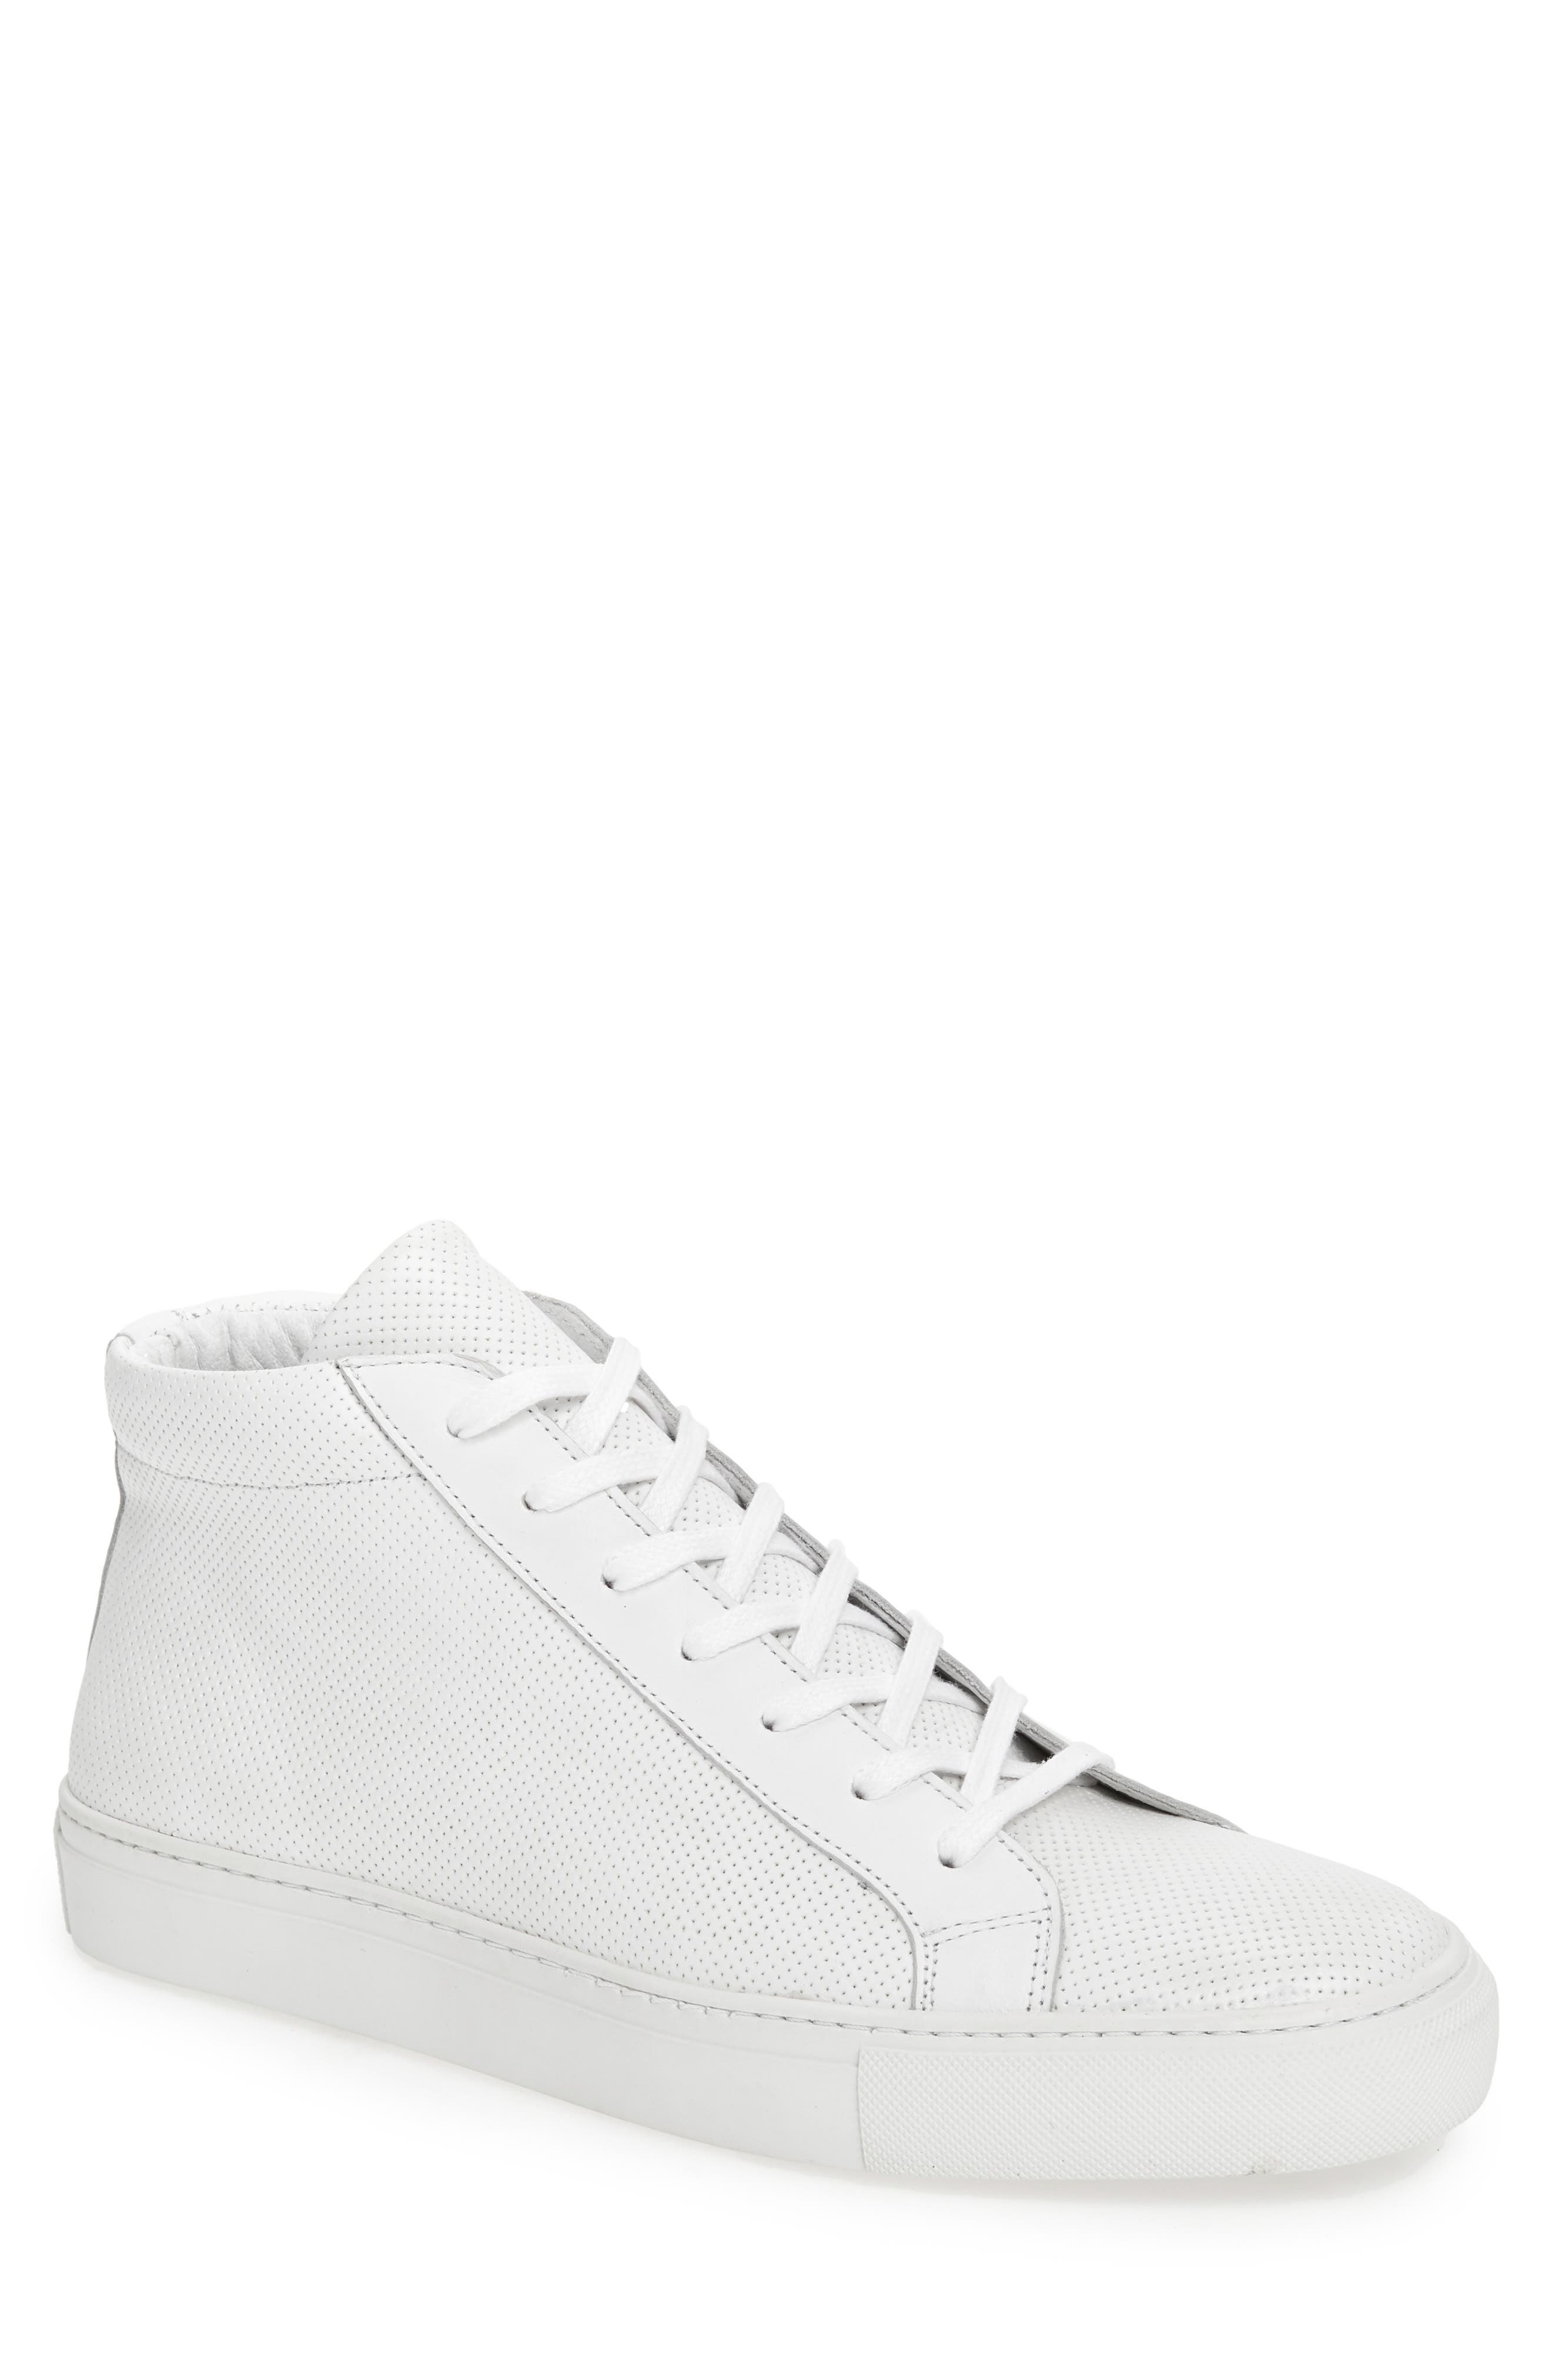 Deacon Mid Sneaker,                             Main thumbnail 1, color,                             WHITE PERFORATED LEATHER